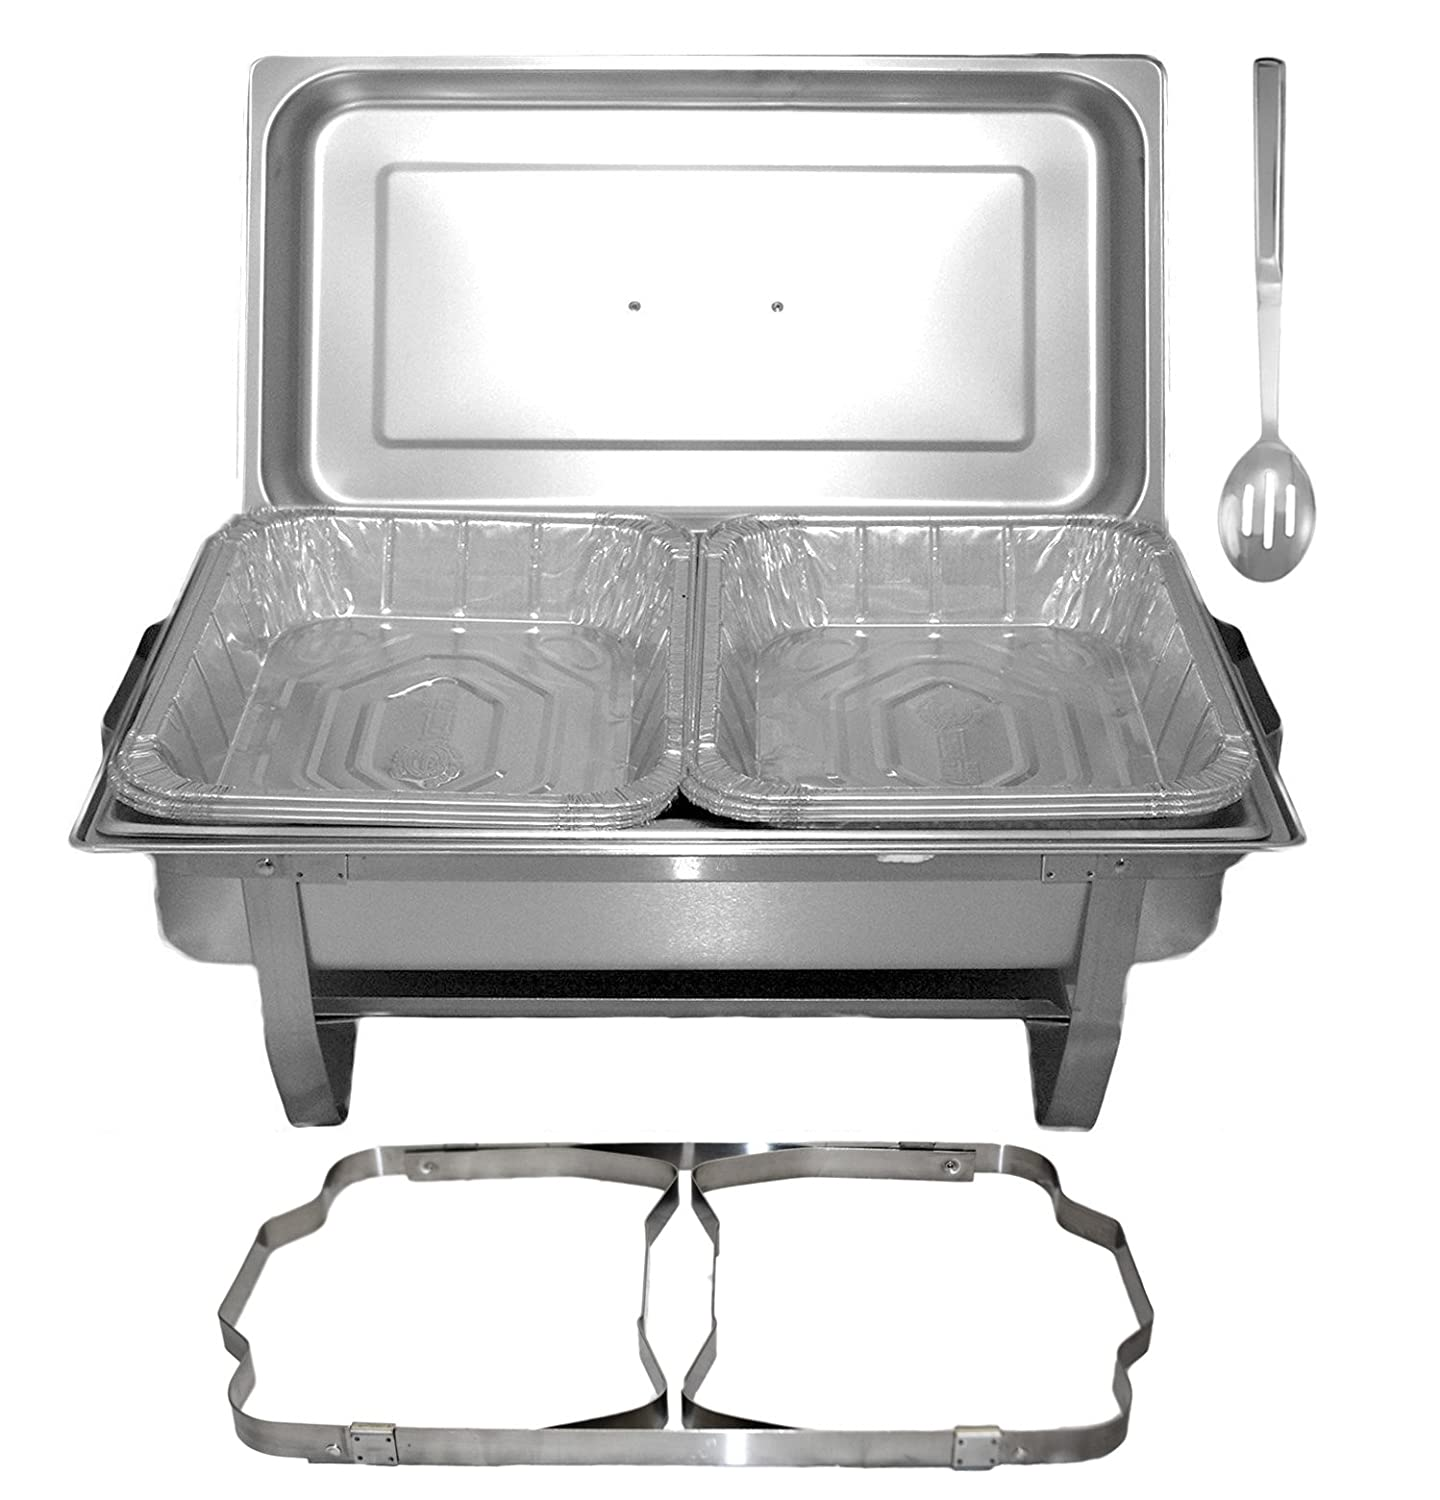 Tiger Chef 8 Quart Full Size Stainless Steel Chafer with Folding Frame and Cool-Touch Plastic on top - includes 6 Disposable Half Size Pans and a Slotted Spoon Foldable Chafing Dish